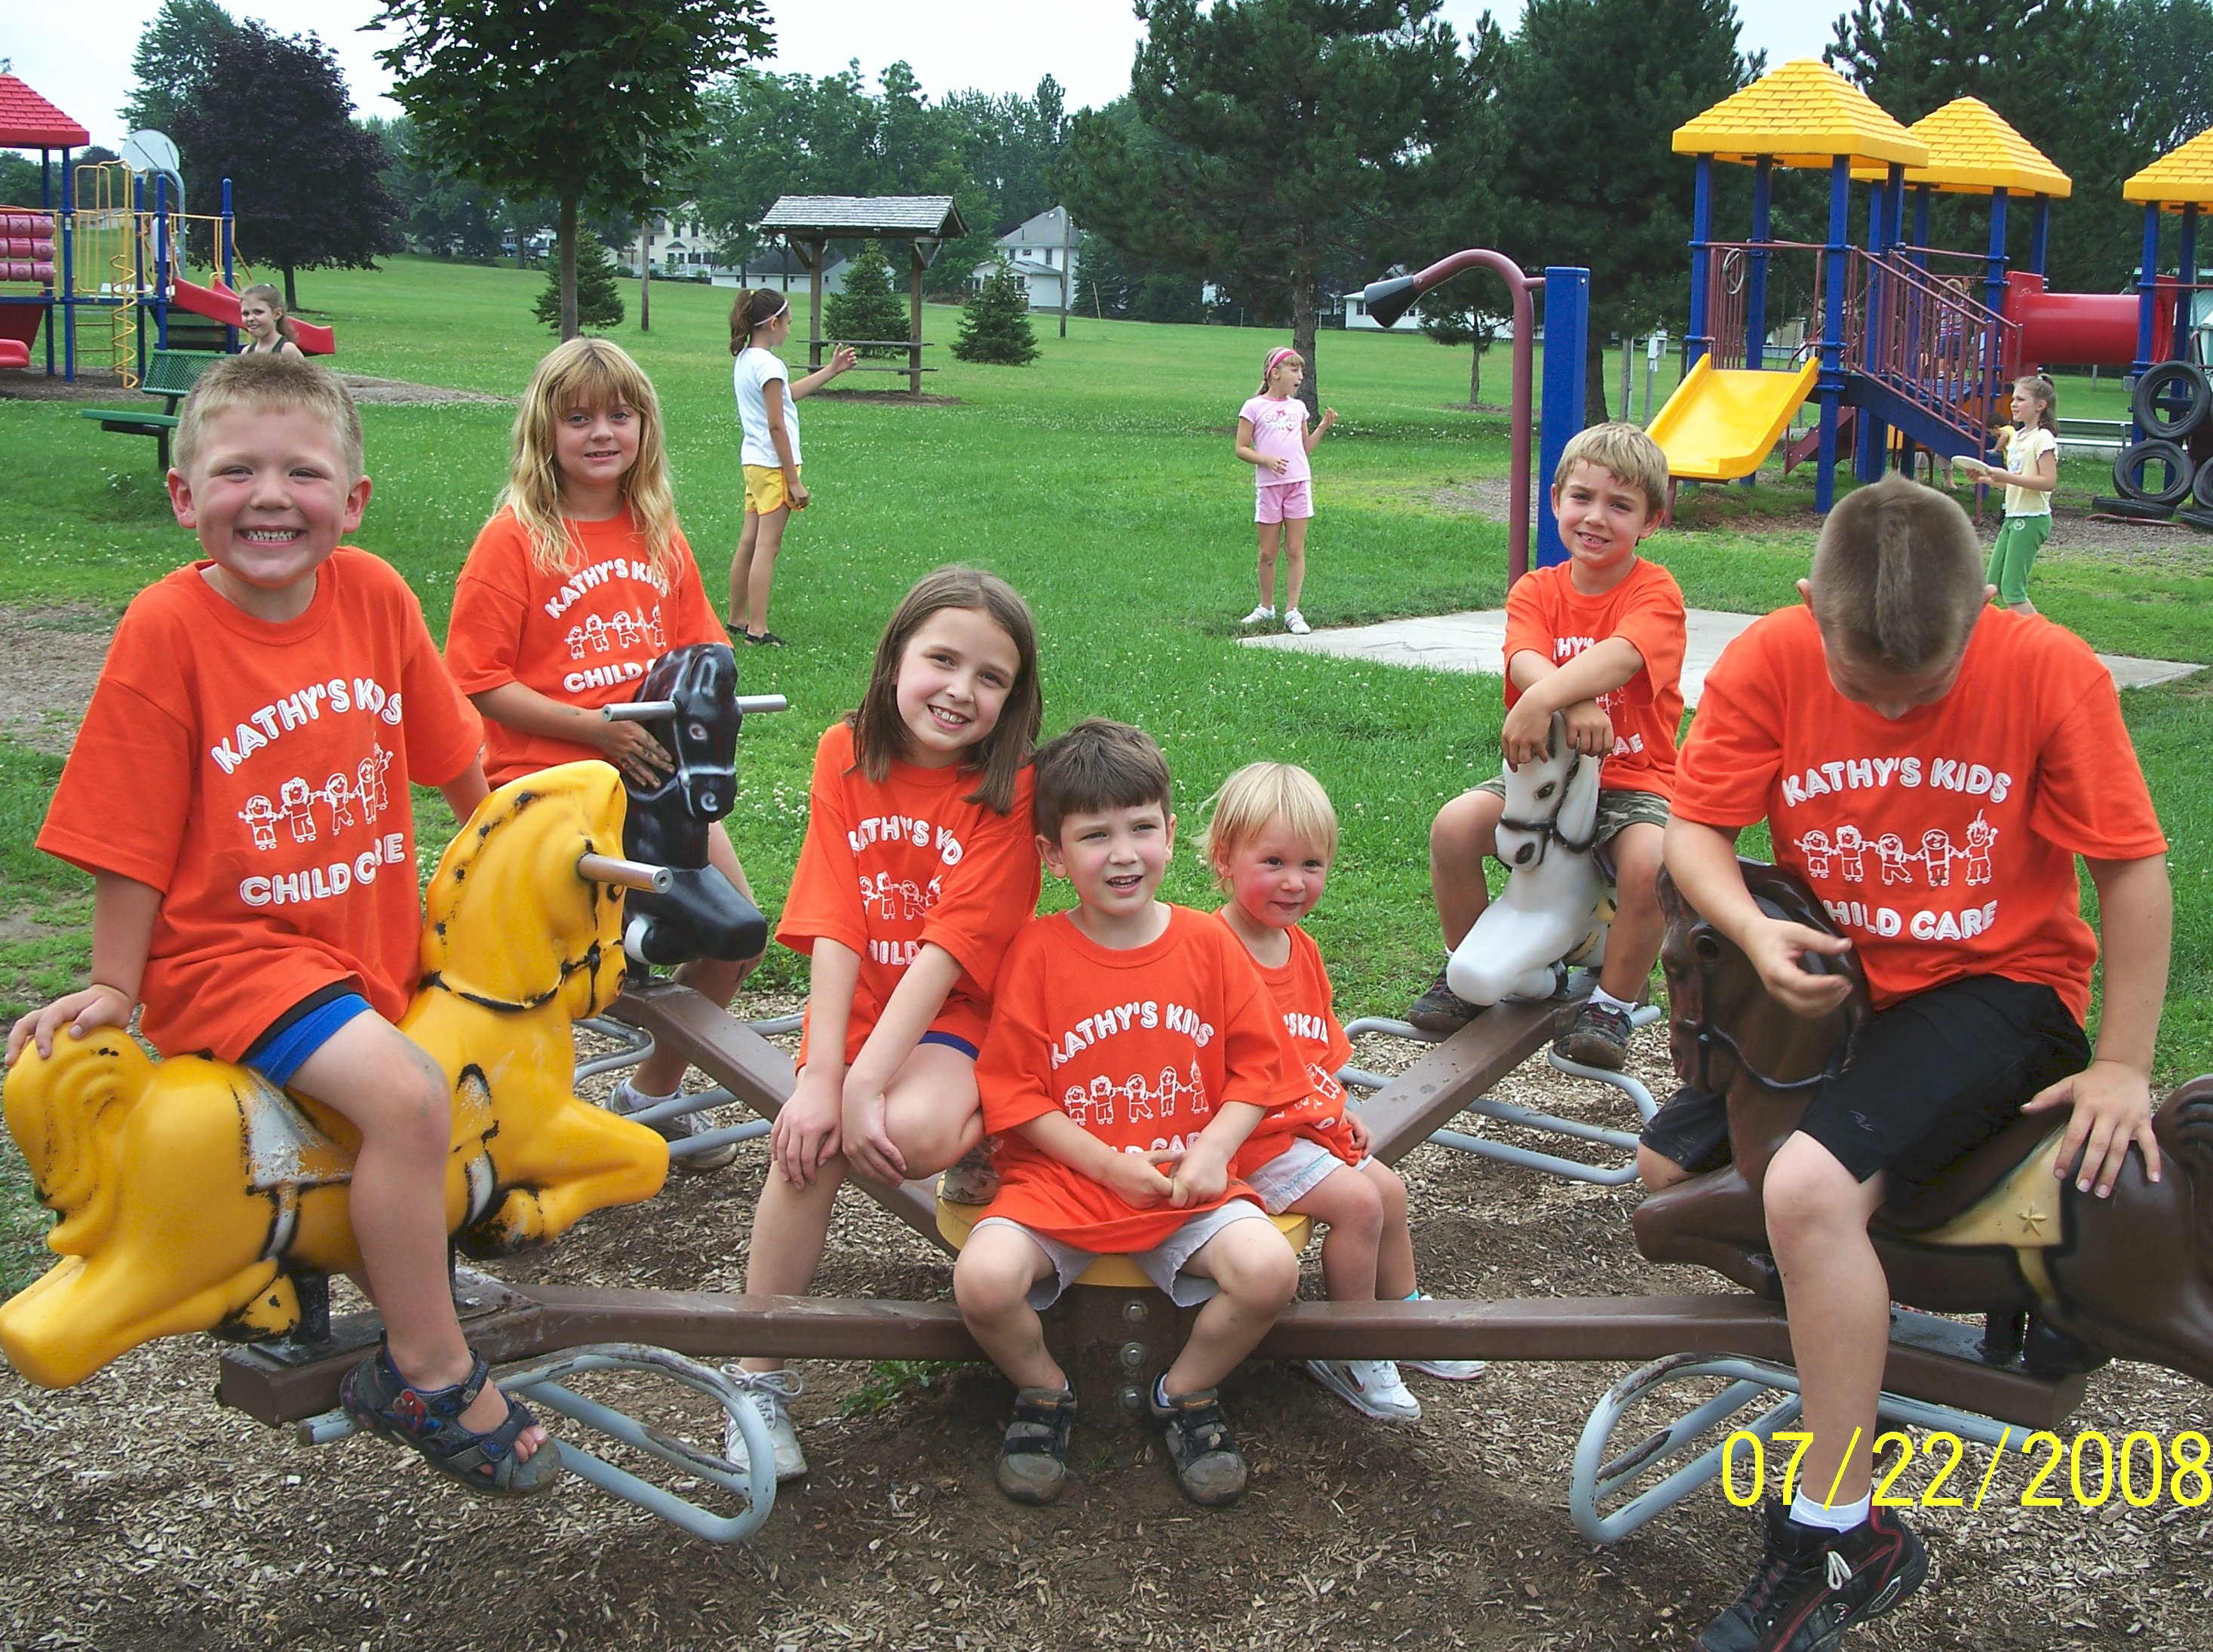 Custom t shirts for kathy 39 s kids child care field trip for Day trip to nyc with kids